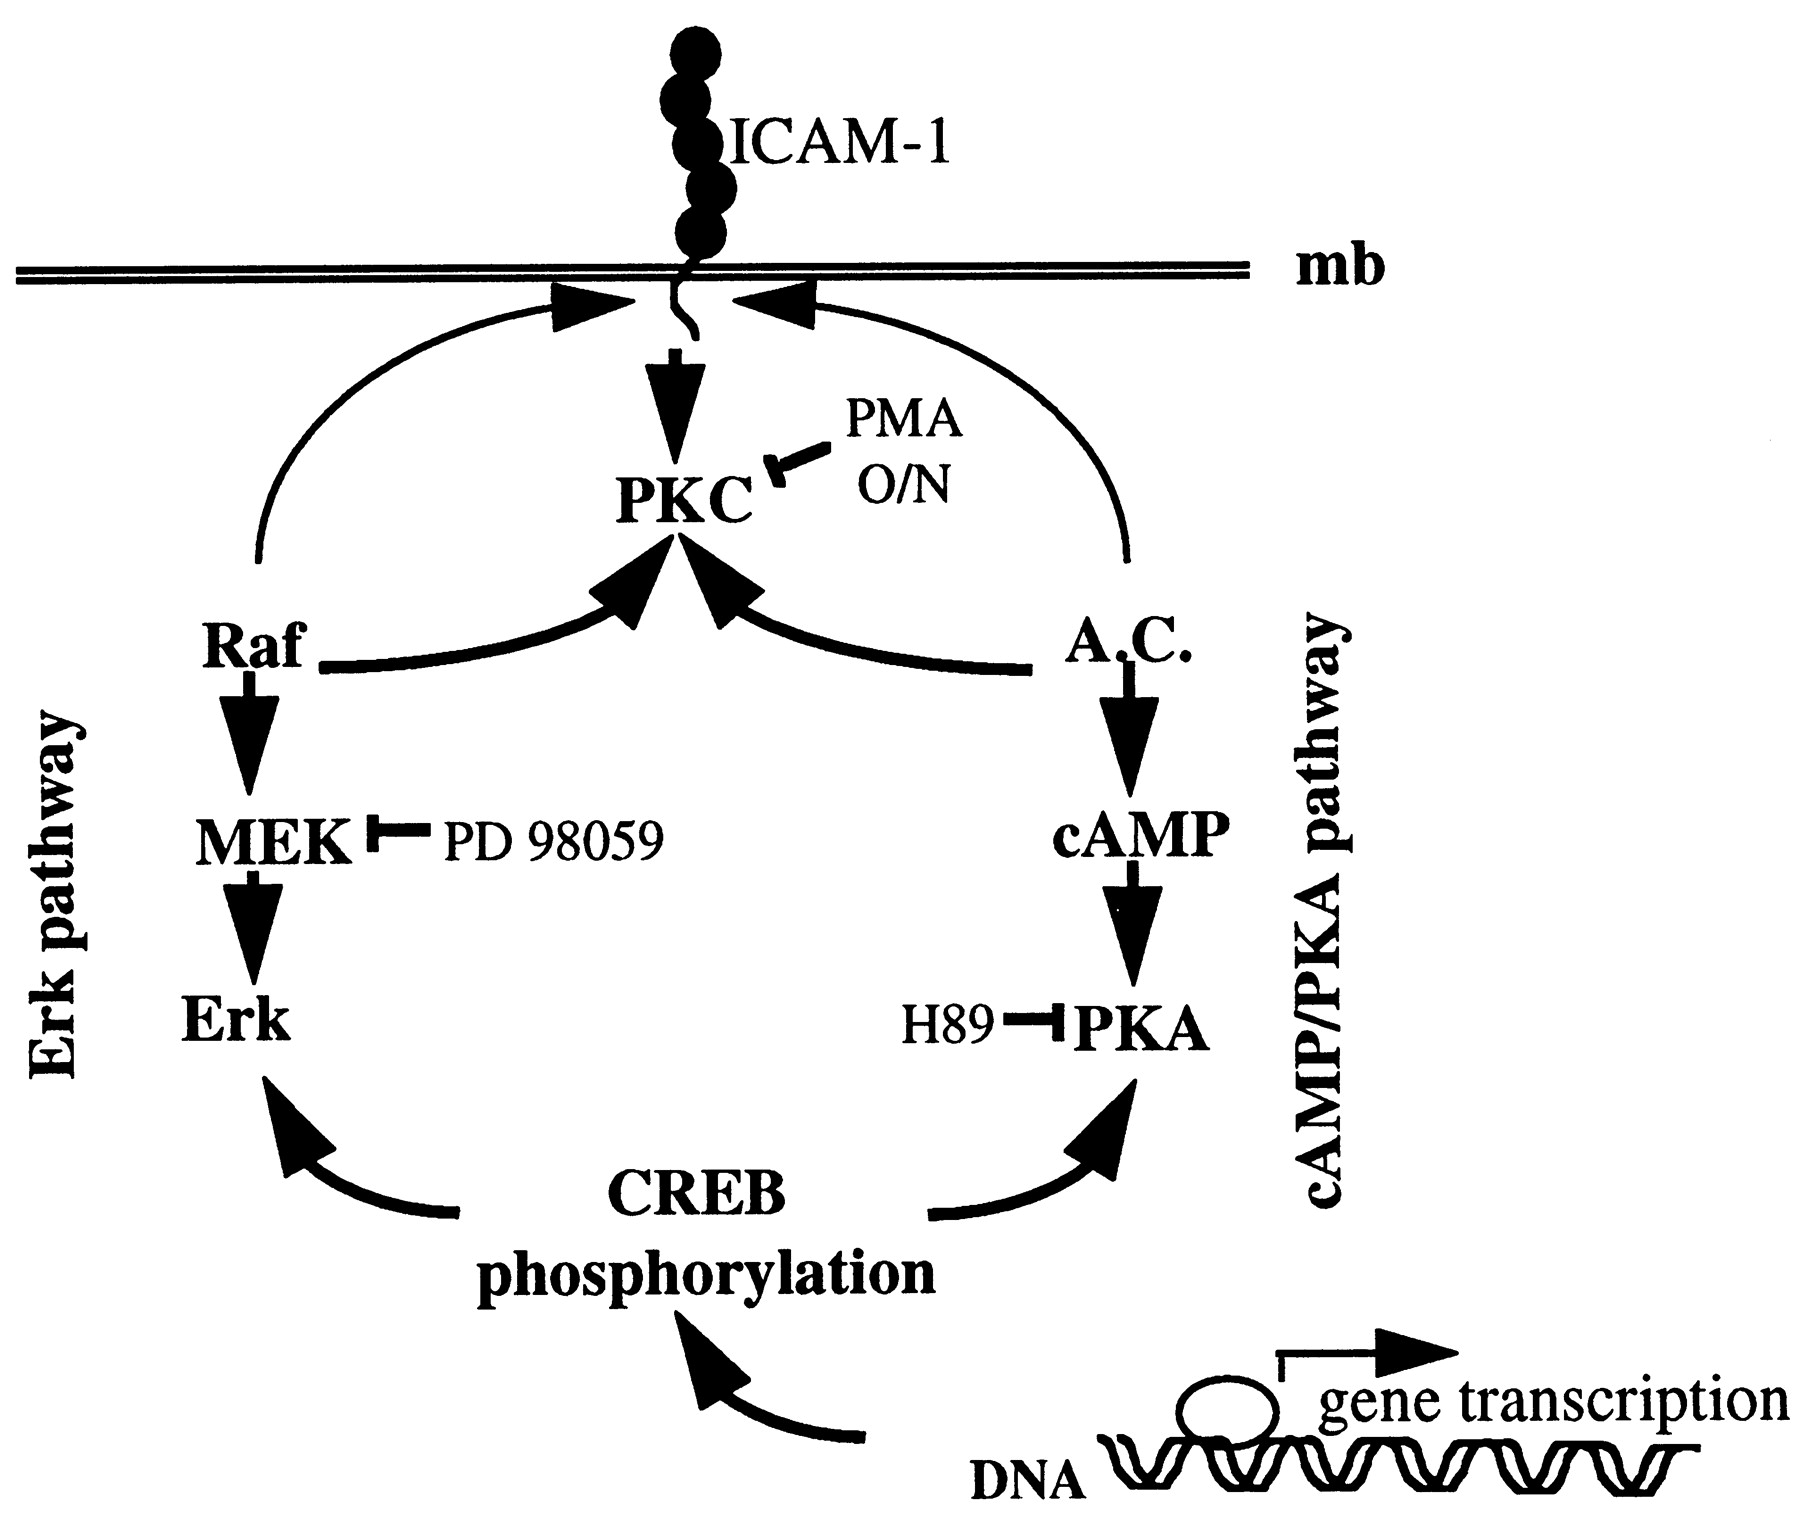 ICAM-1-Coupled Signaling Pathways in Astrocytes Converge